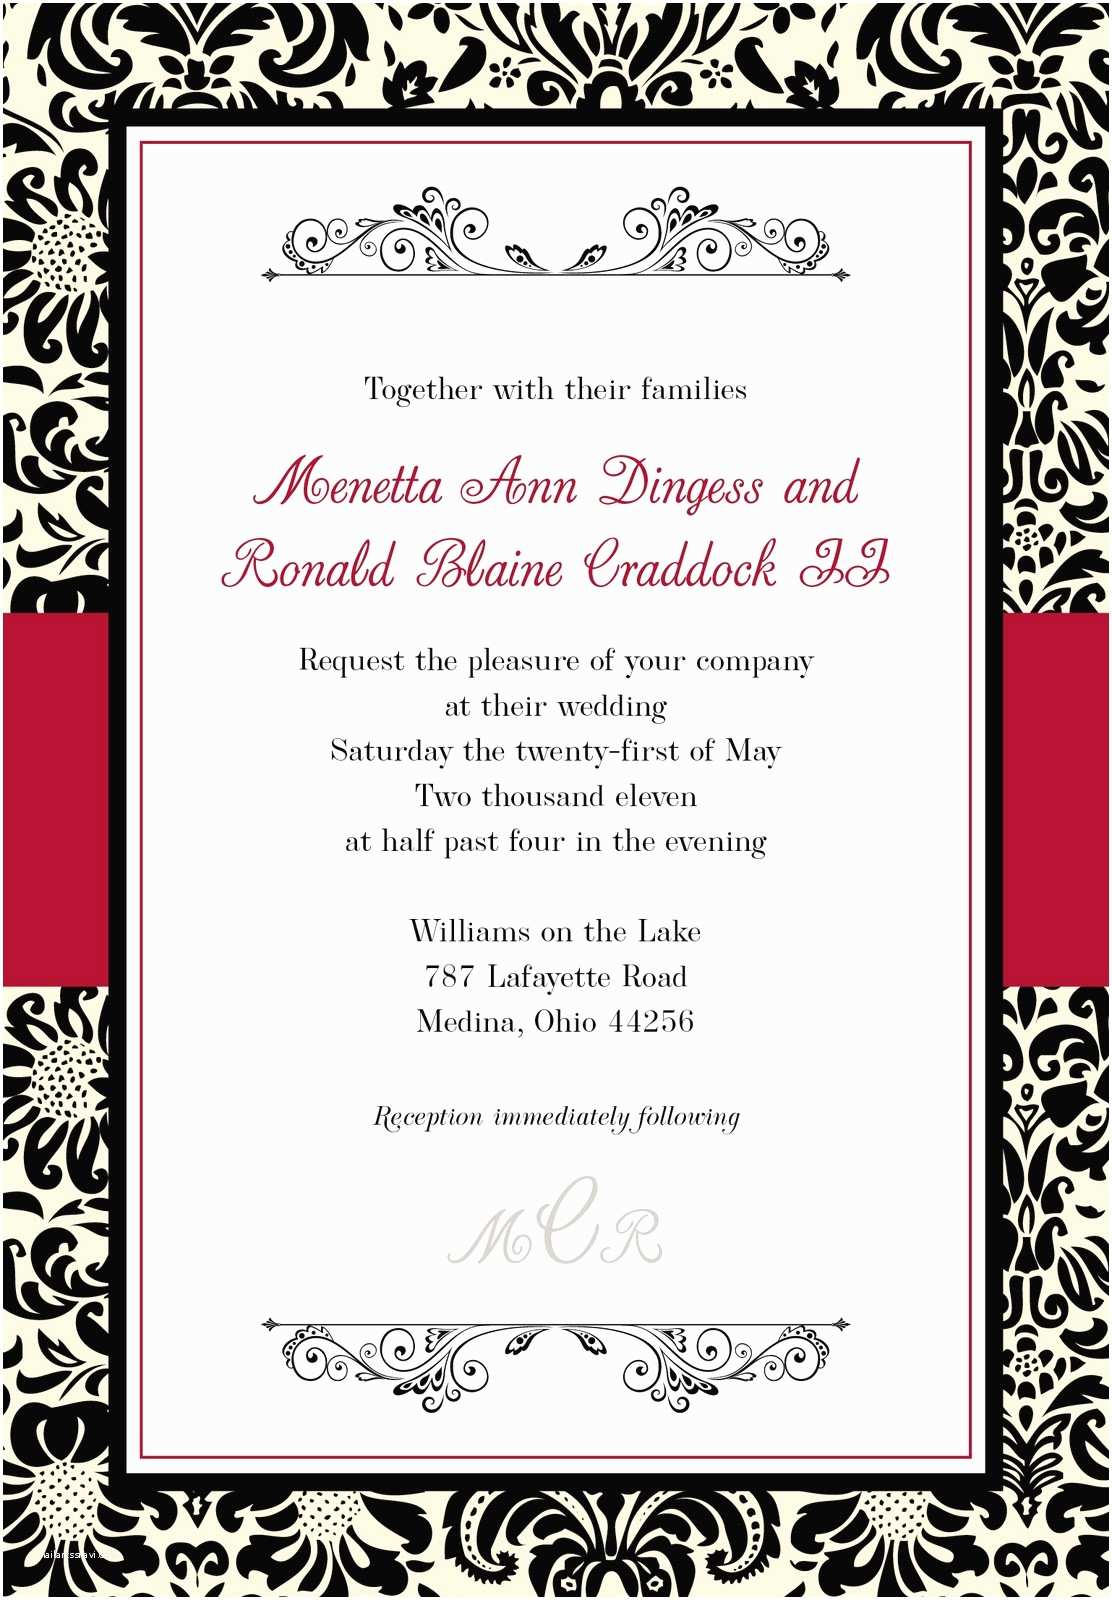 Black Red White Wedding Invitations Mkaydesigns Black Red White and Ivory Damask Invitation